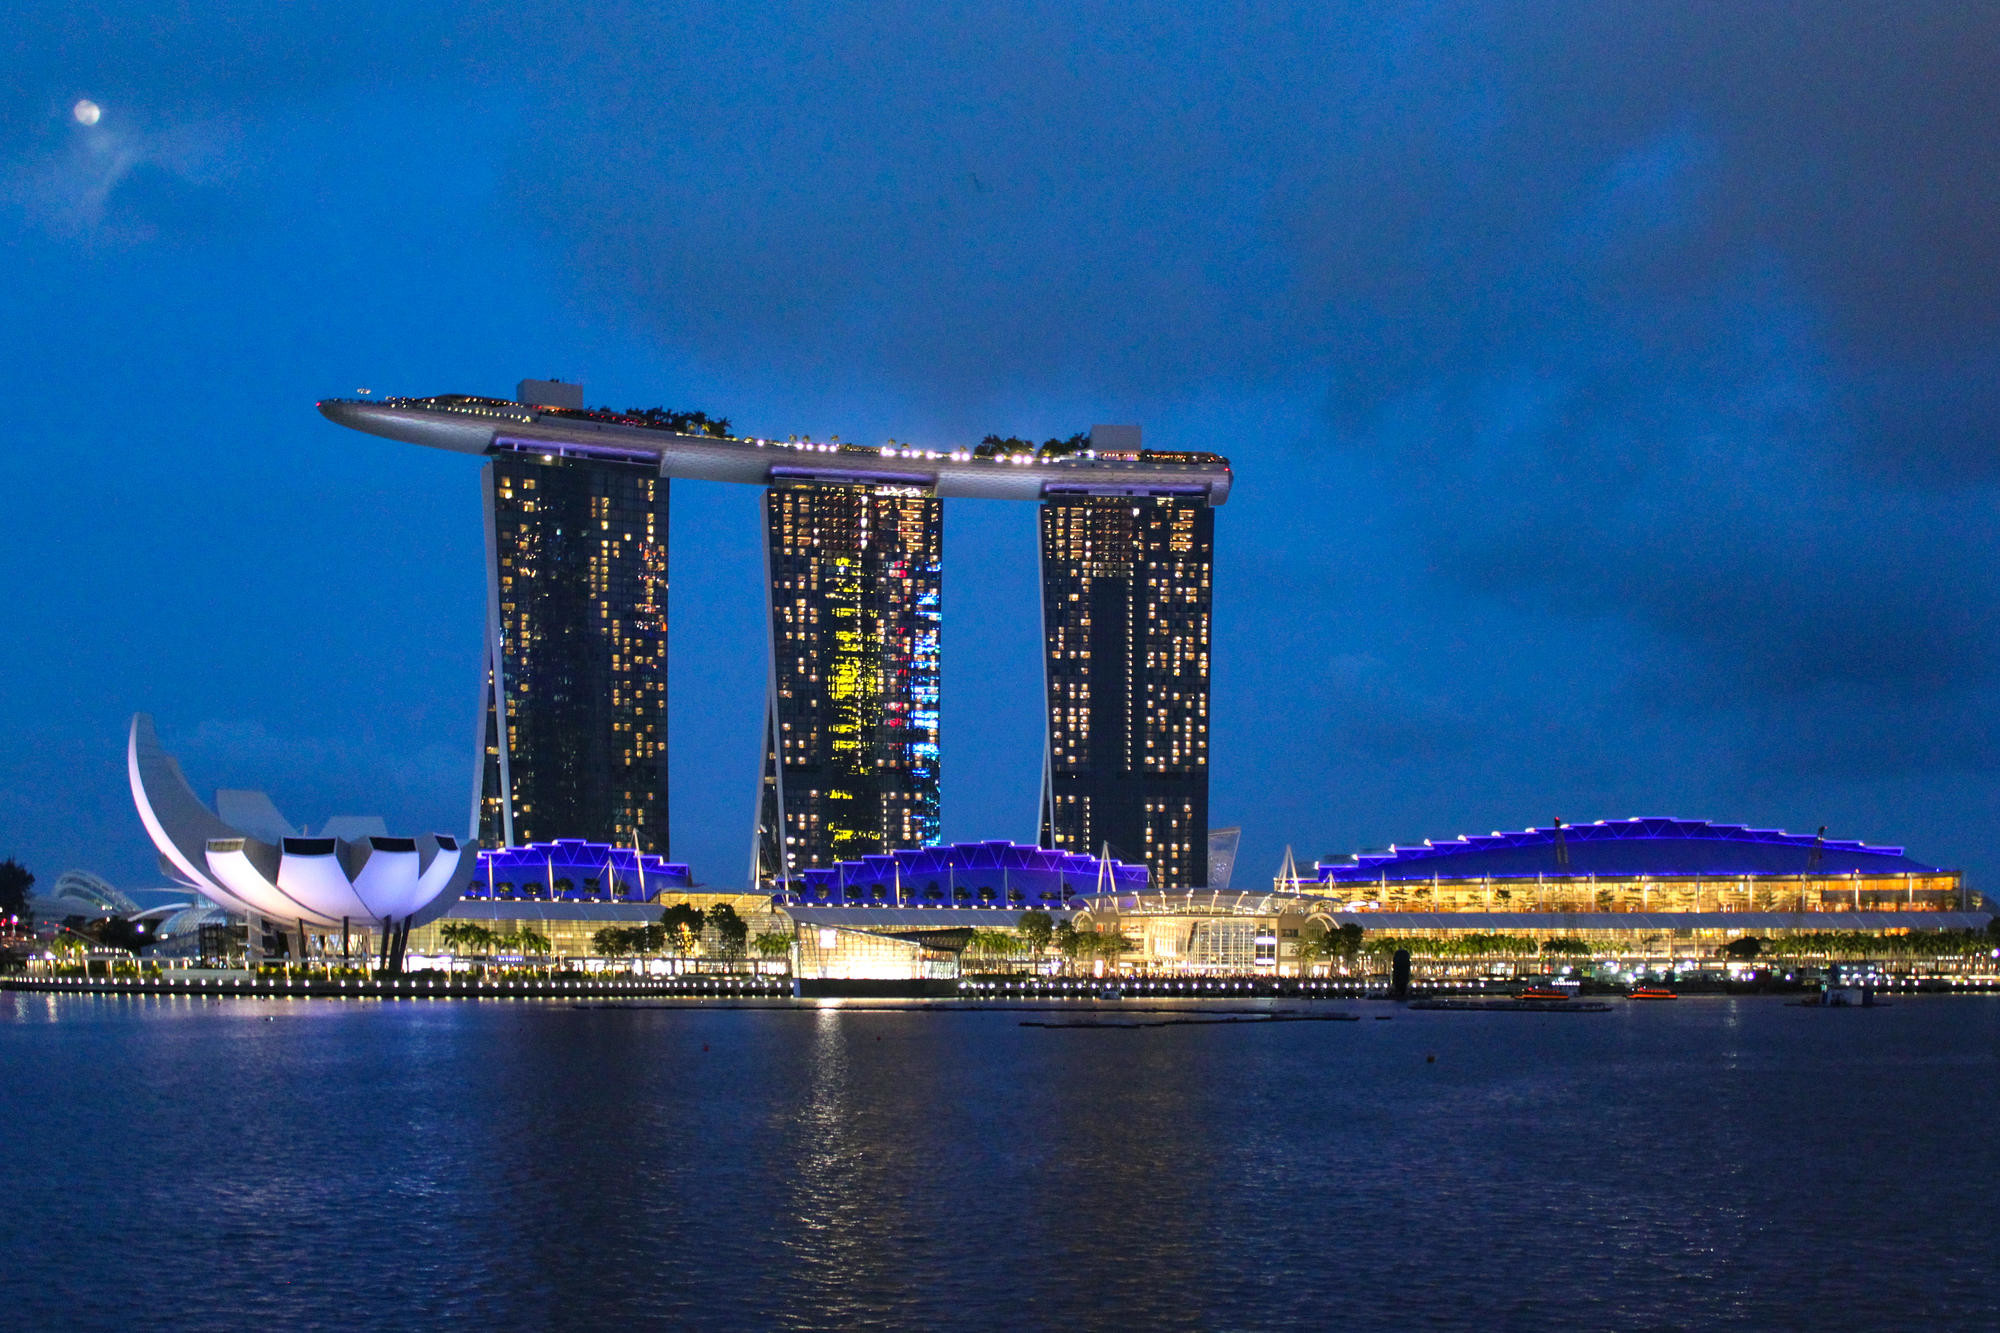 Marina Bay and the Marina Bay Sands in Singapore/Oyster